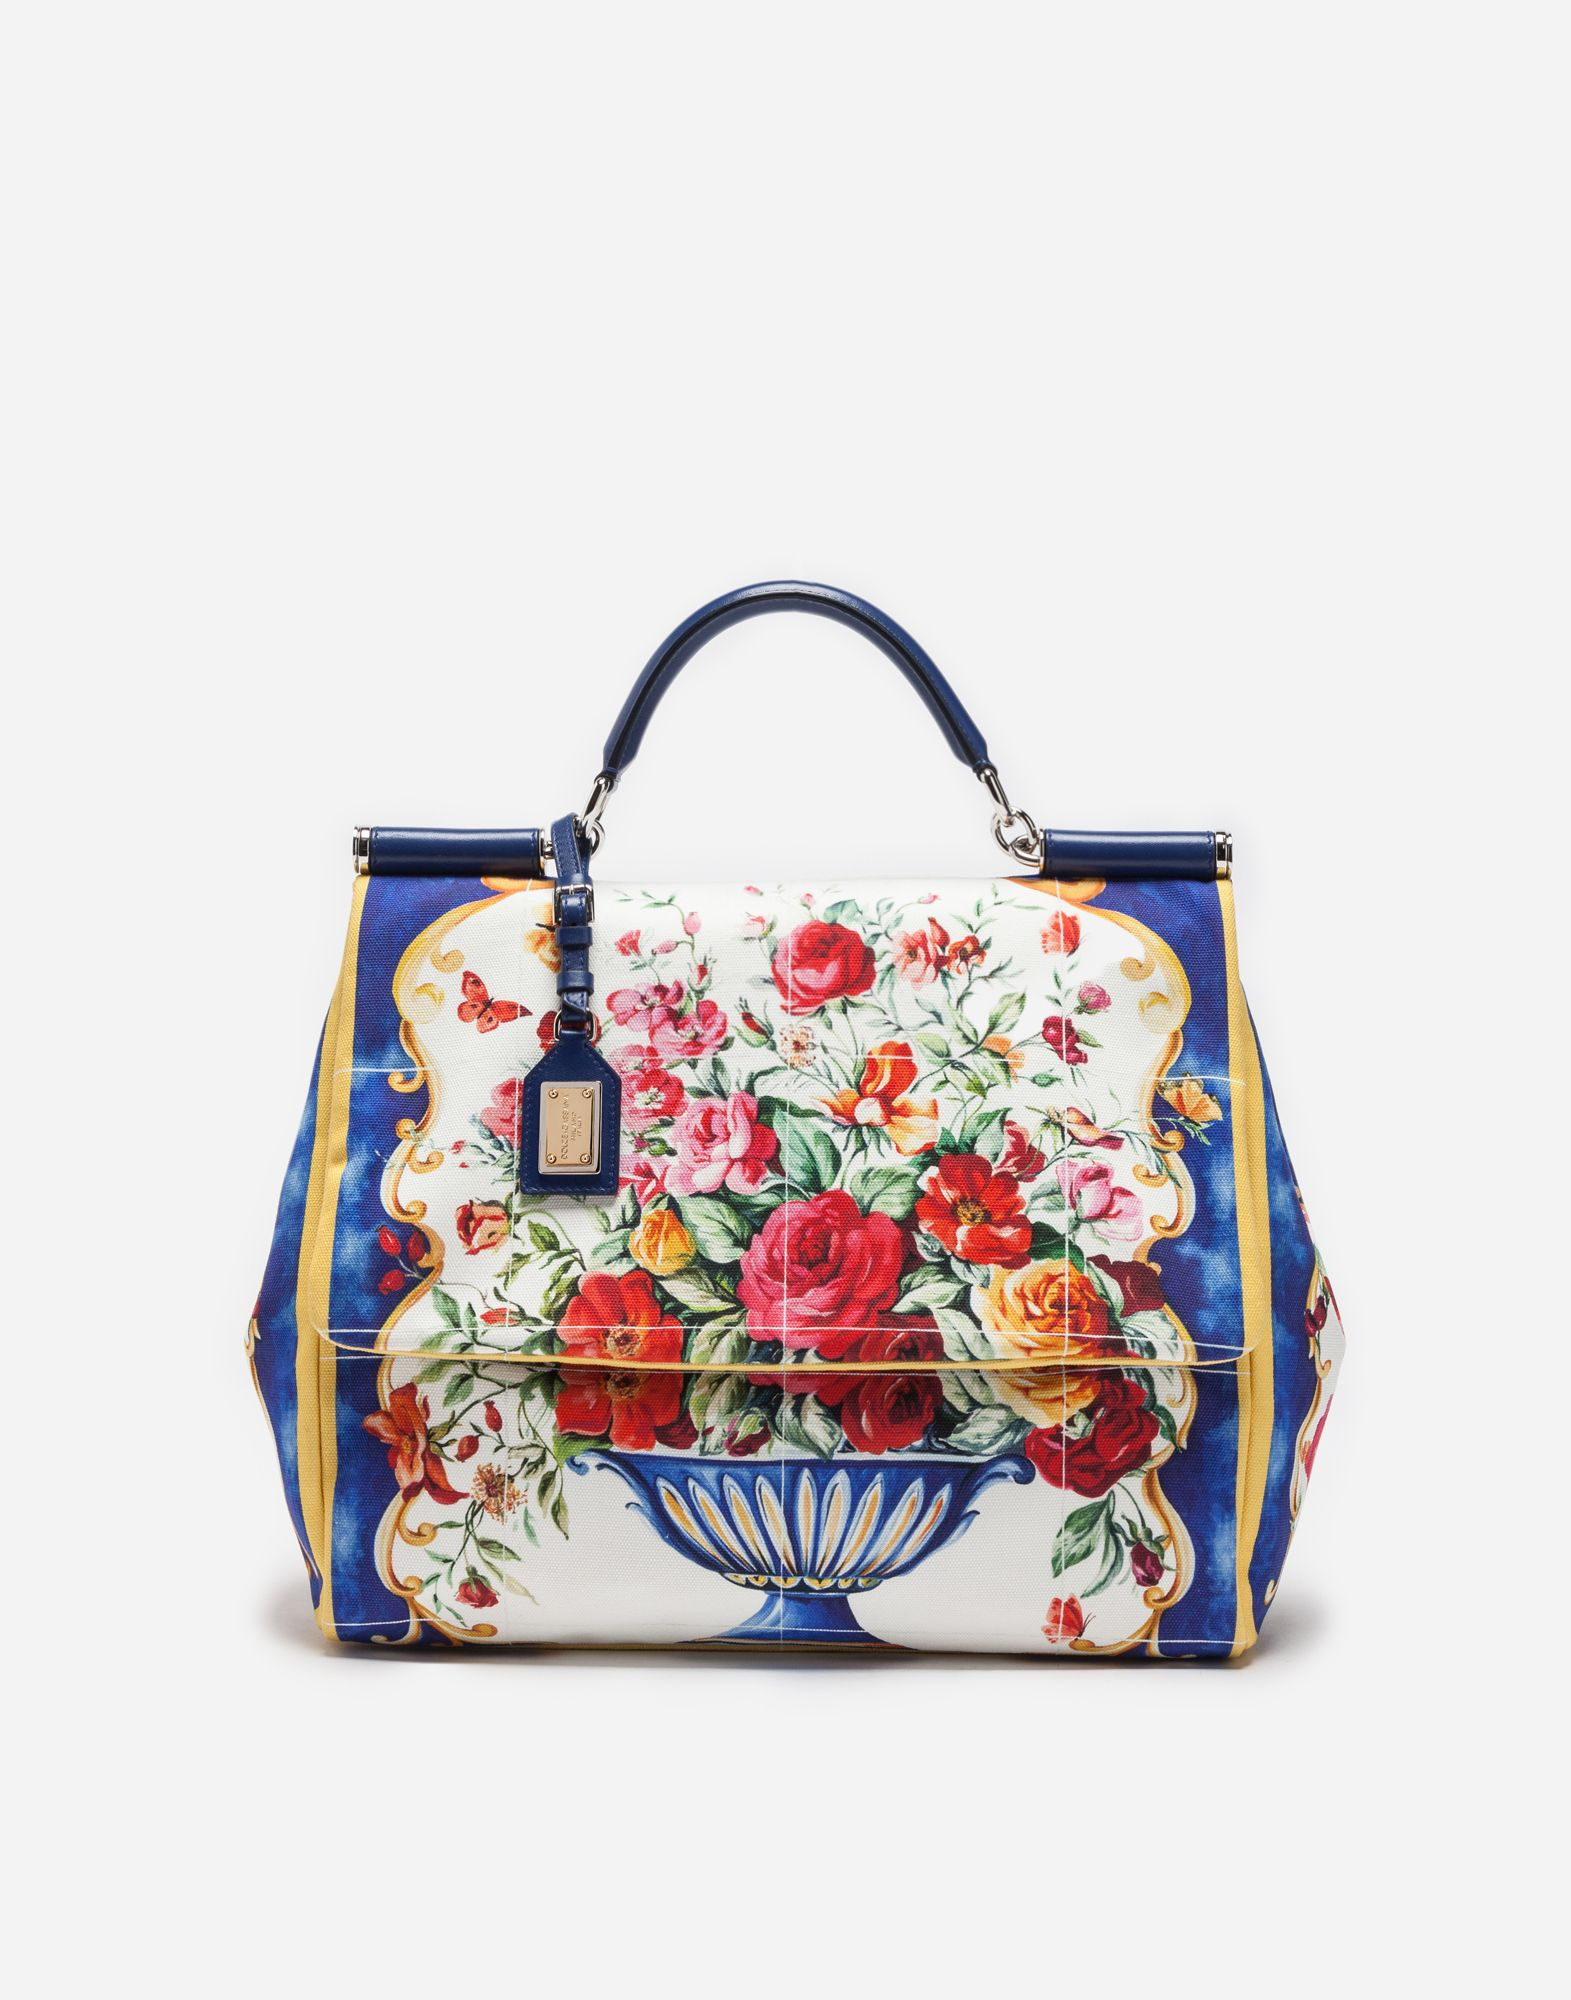 88274bc117b D G   SICILY SOFT BAG IN PRINTED CANVAS. D G   SICILY SOFT BAG IN PRINTED  CANVAS Dolce Gabbana ...